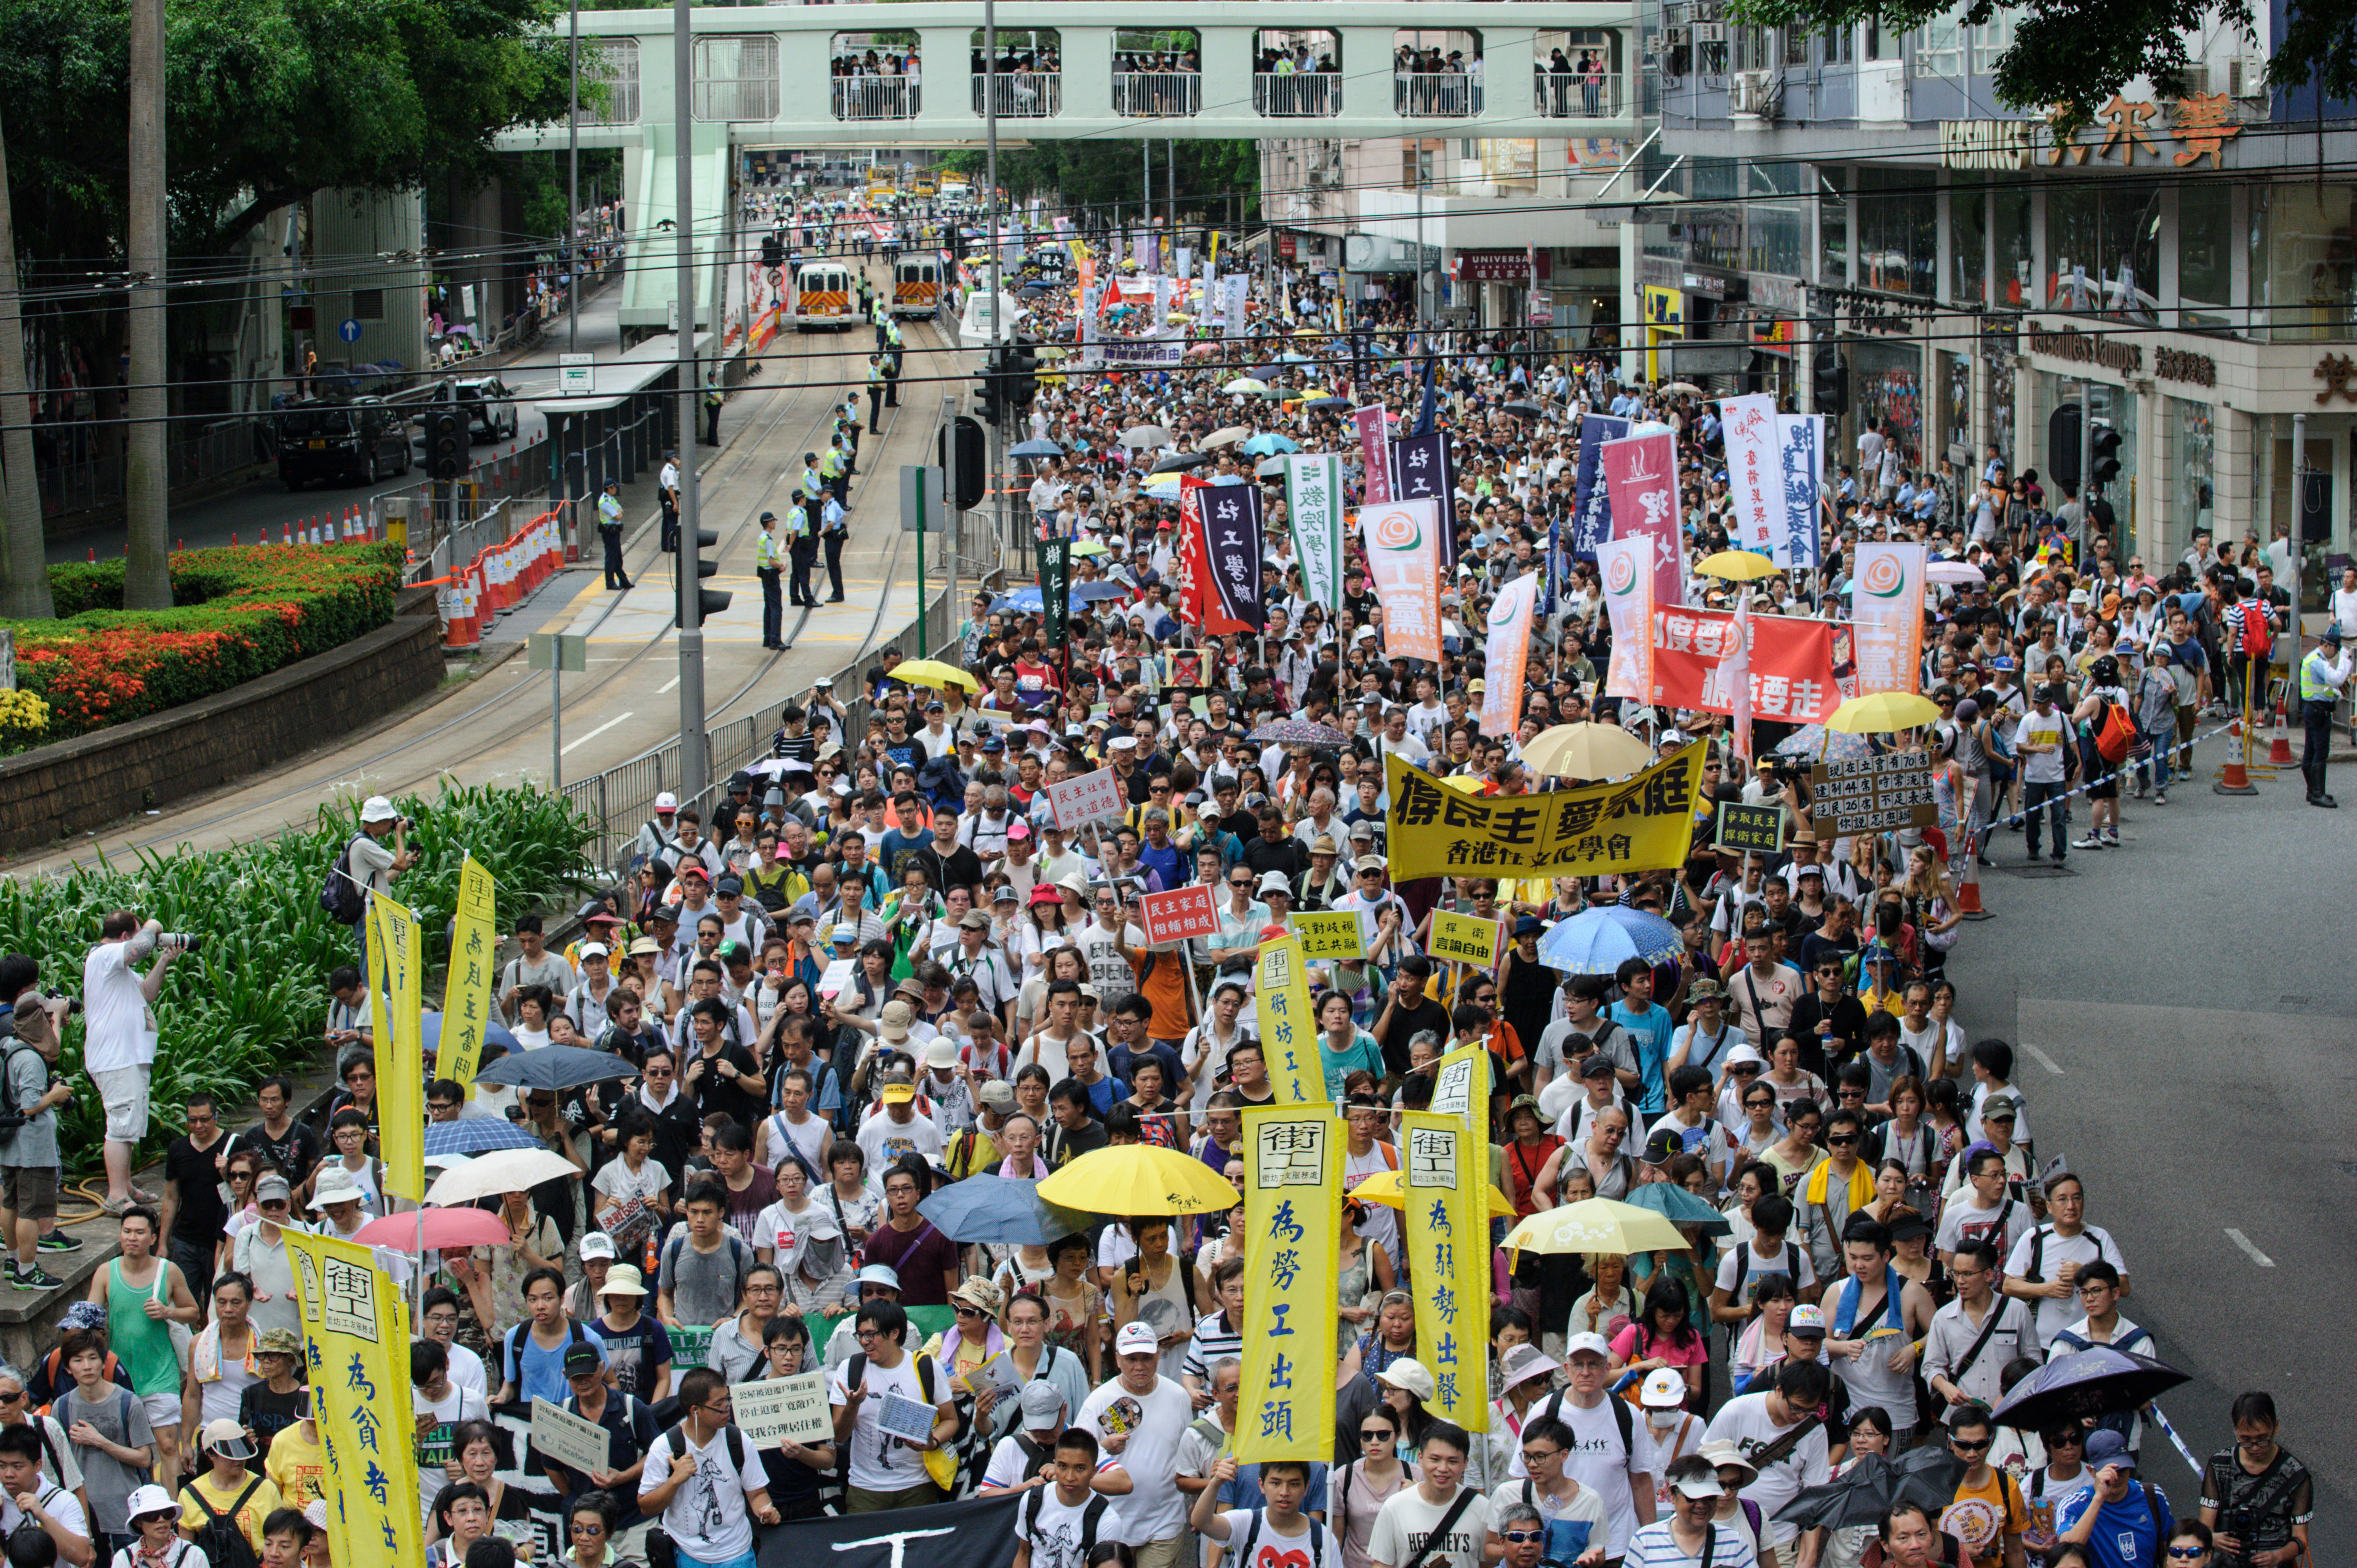 Protesters at a pro-democracy rally in Hong Kong on July 1, 2016.